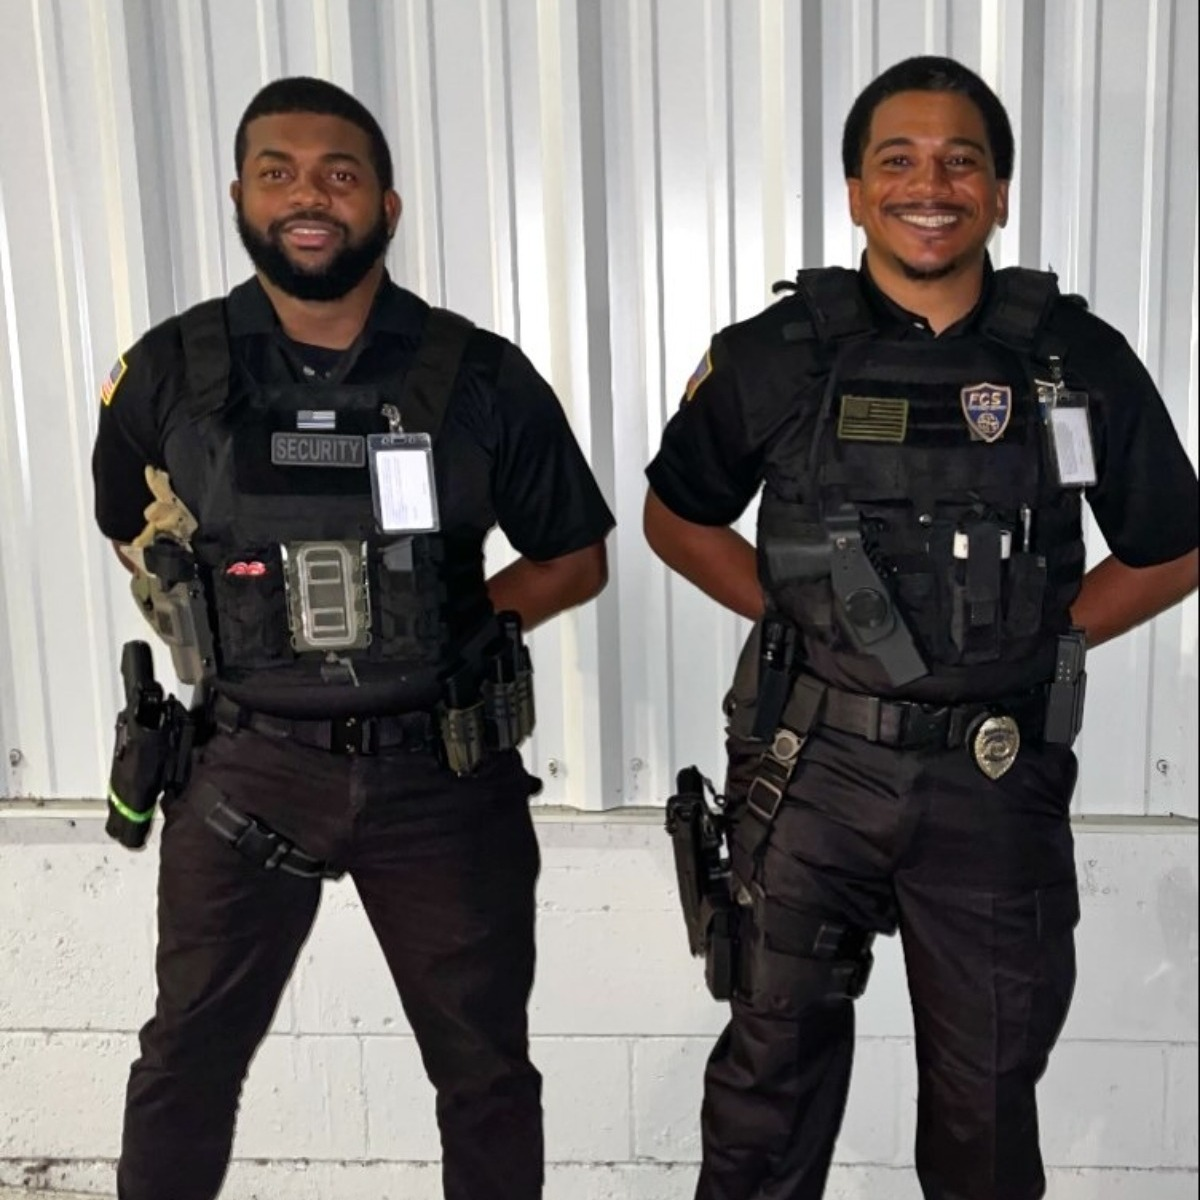 FCS Security Officers